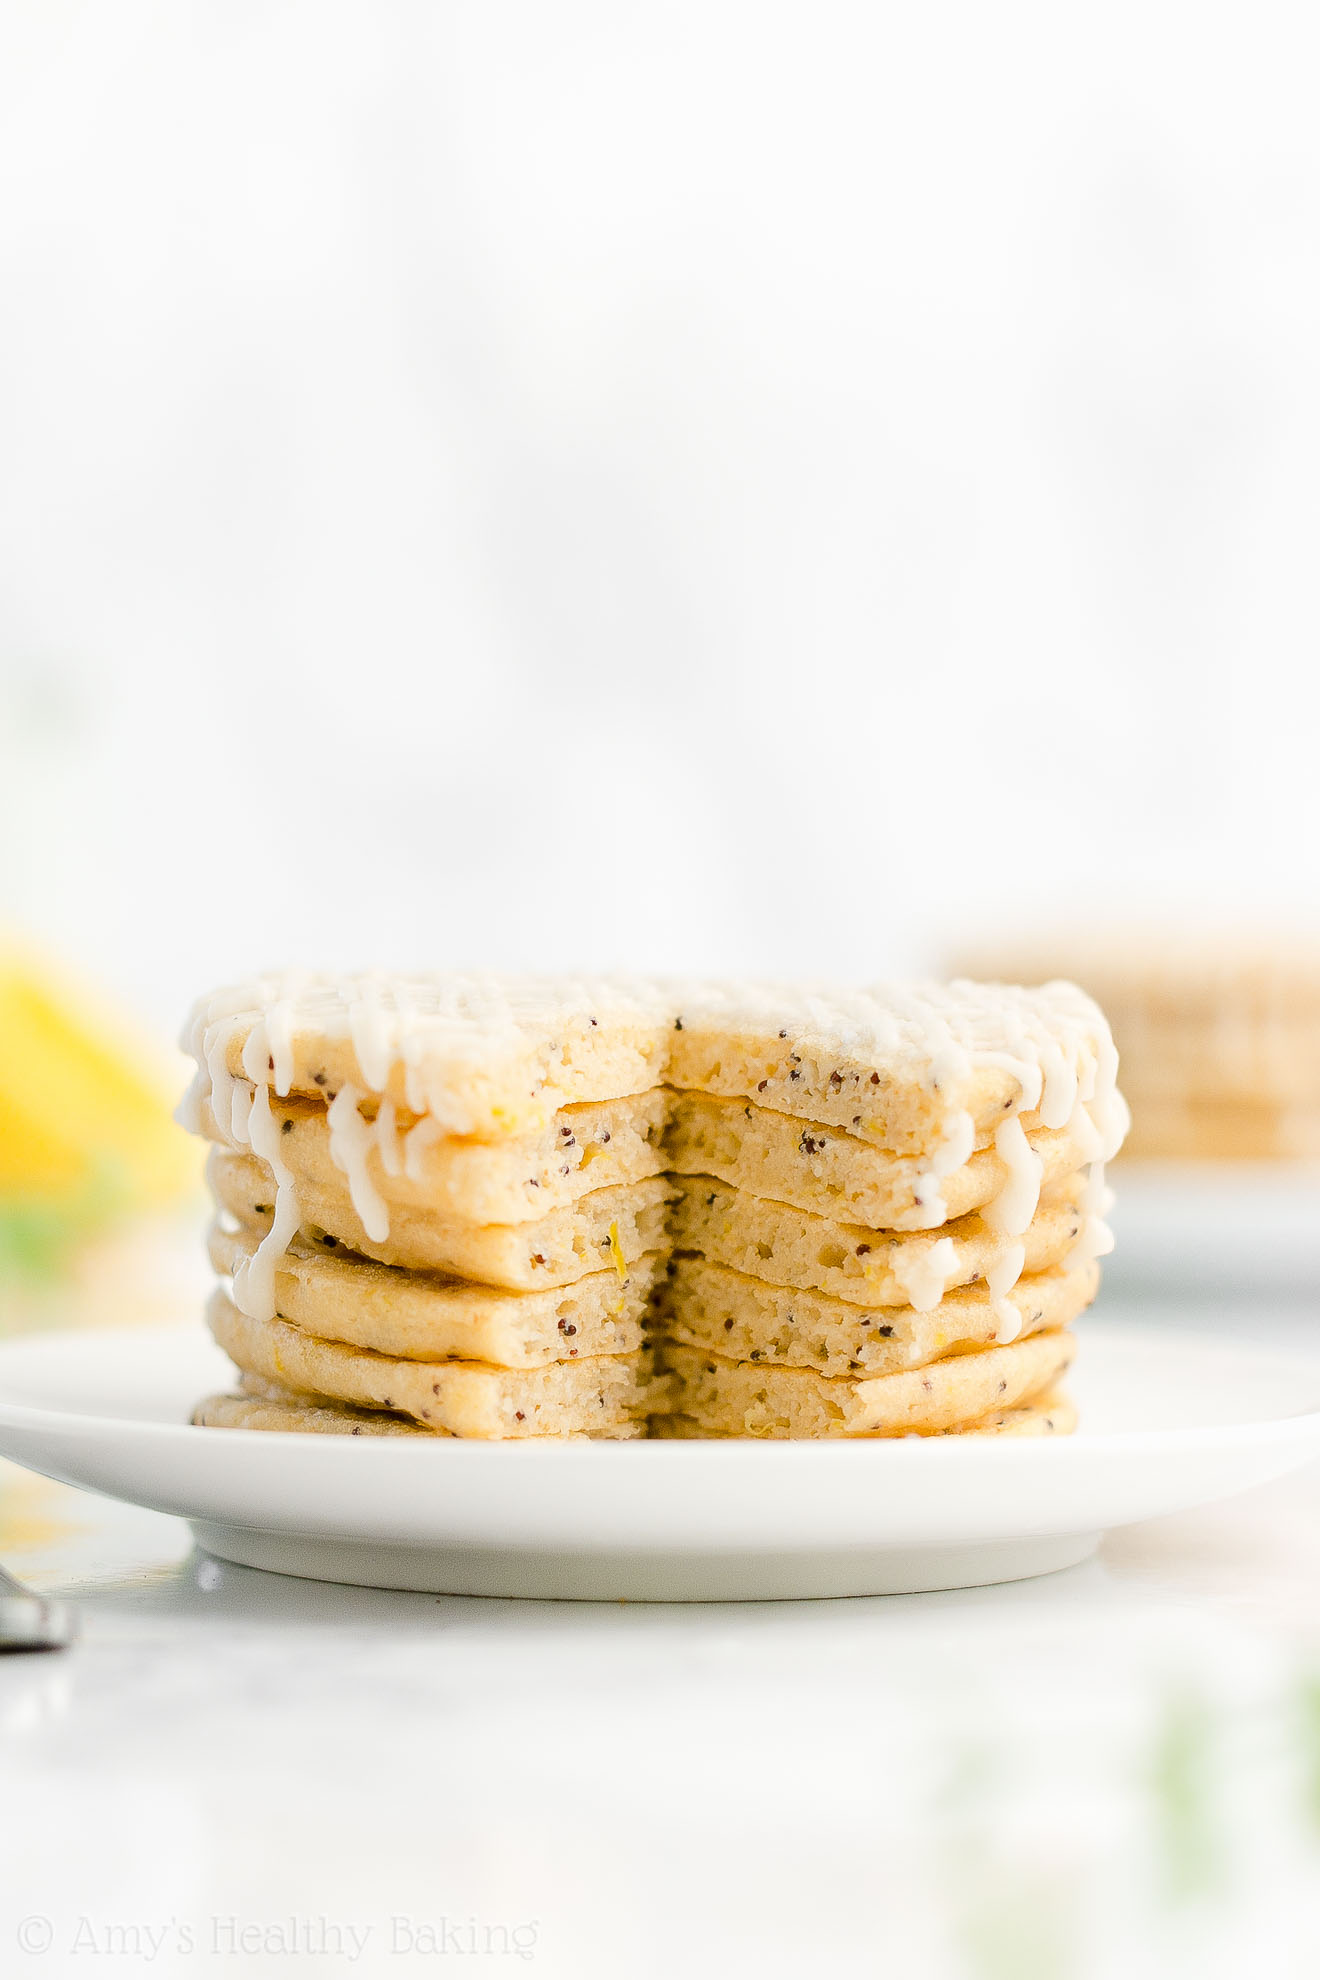 Best Easy Healthy Low Calorie Low Fat No Sugar Lemon Poppy Seed Pancakes